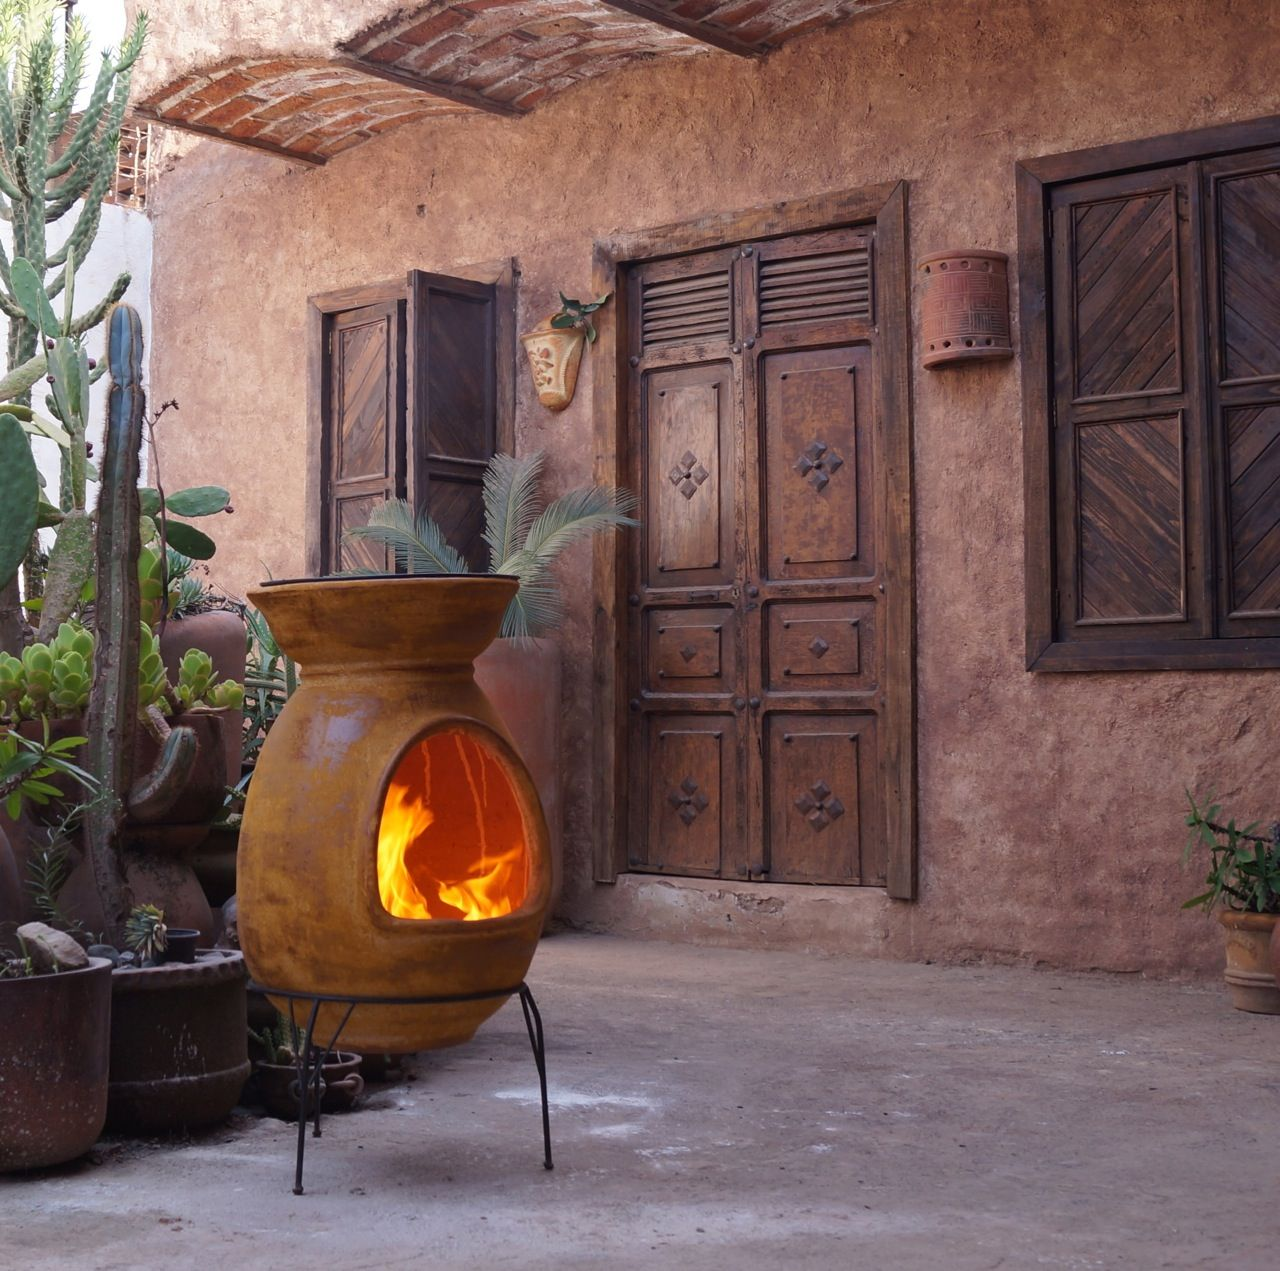 Chimenea chimeneas pinterest casa mexicana for Decoracion de casas rusticas mexicanas